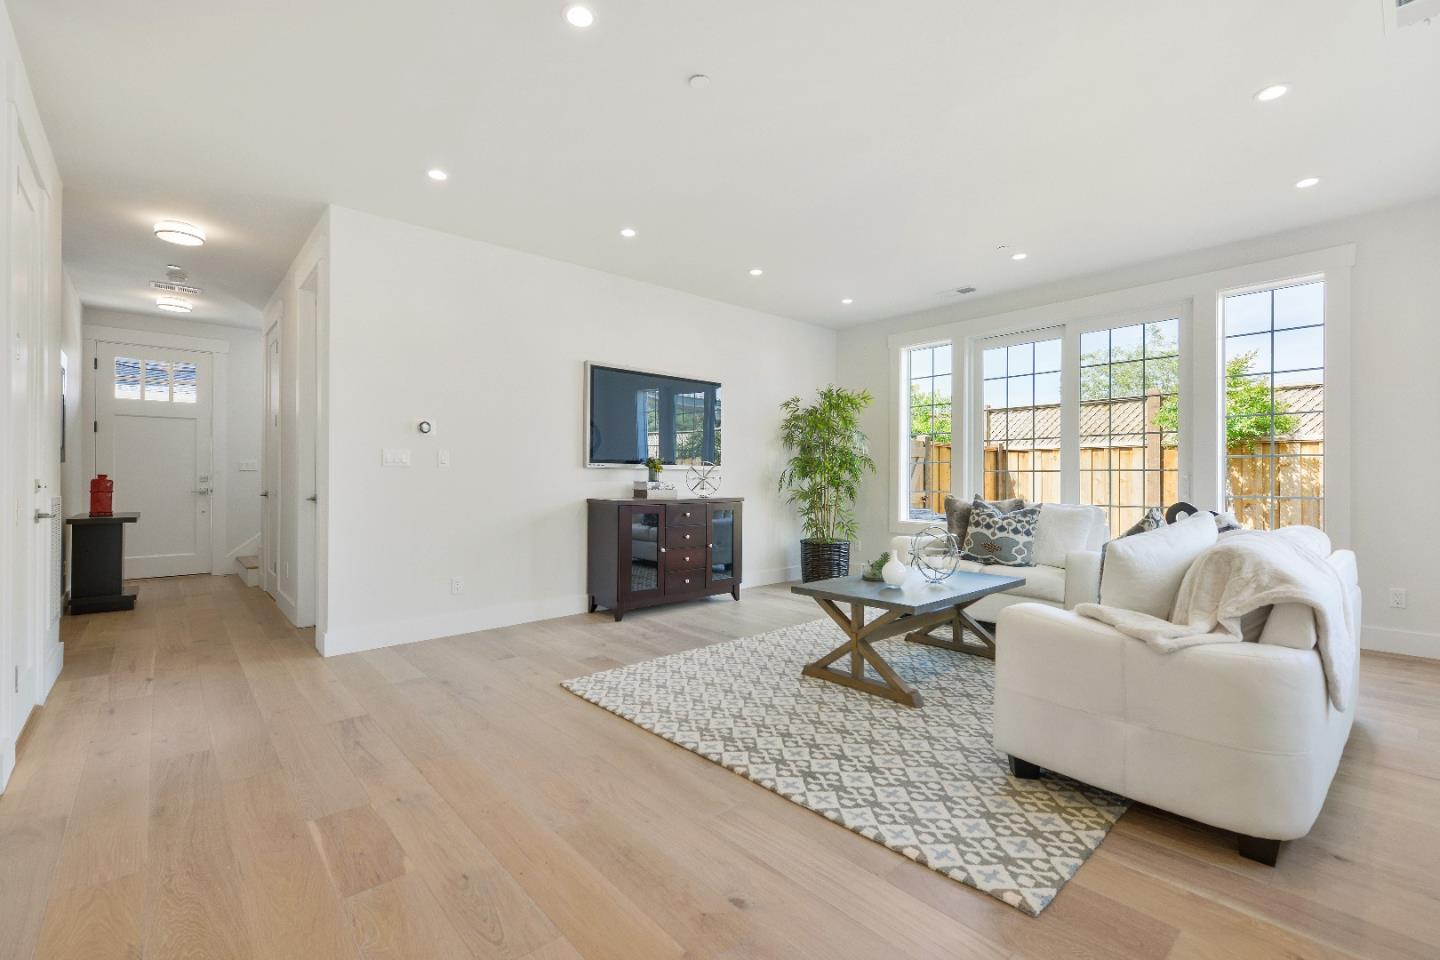 Additional photo for property listing at 1815 Gum St  SAN MATEO, CALIFORNIA 94401